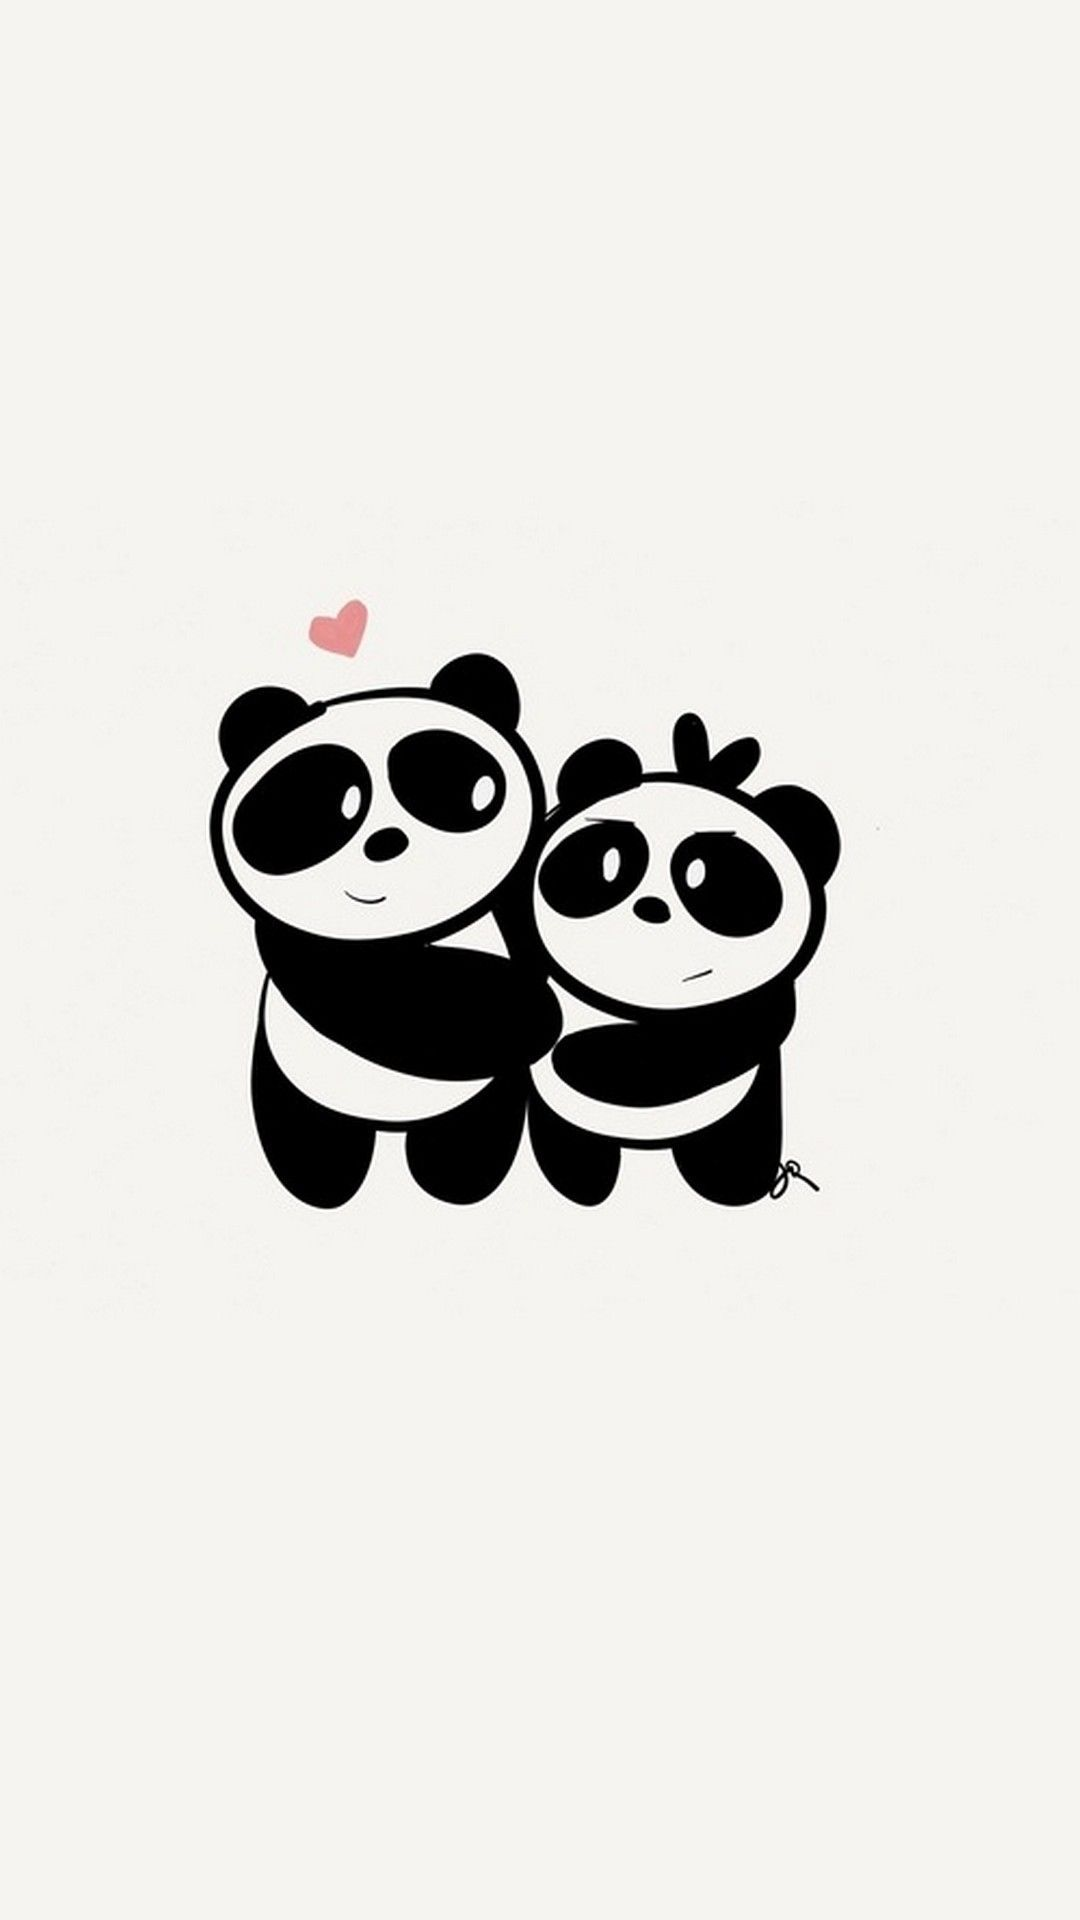 Pin By Desktop Android And Iphone W On Like Me Plss Cute Panda Wallpaper Wallpaper Iphone Cute Panda Wallpaper Iphone